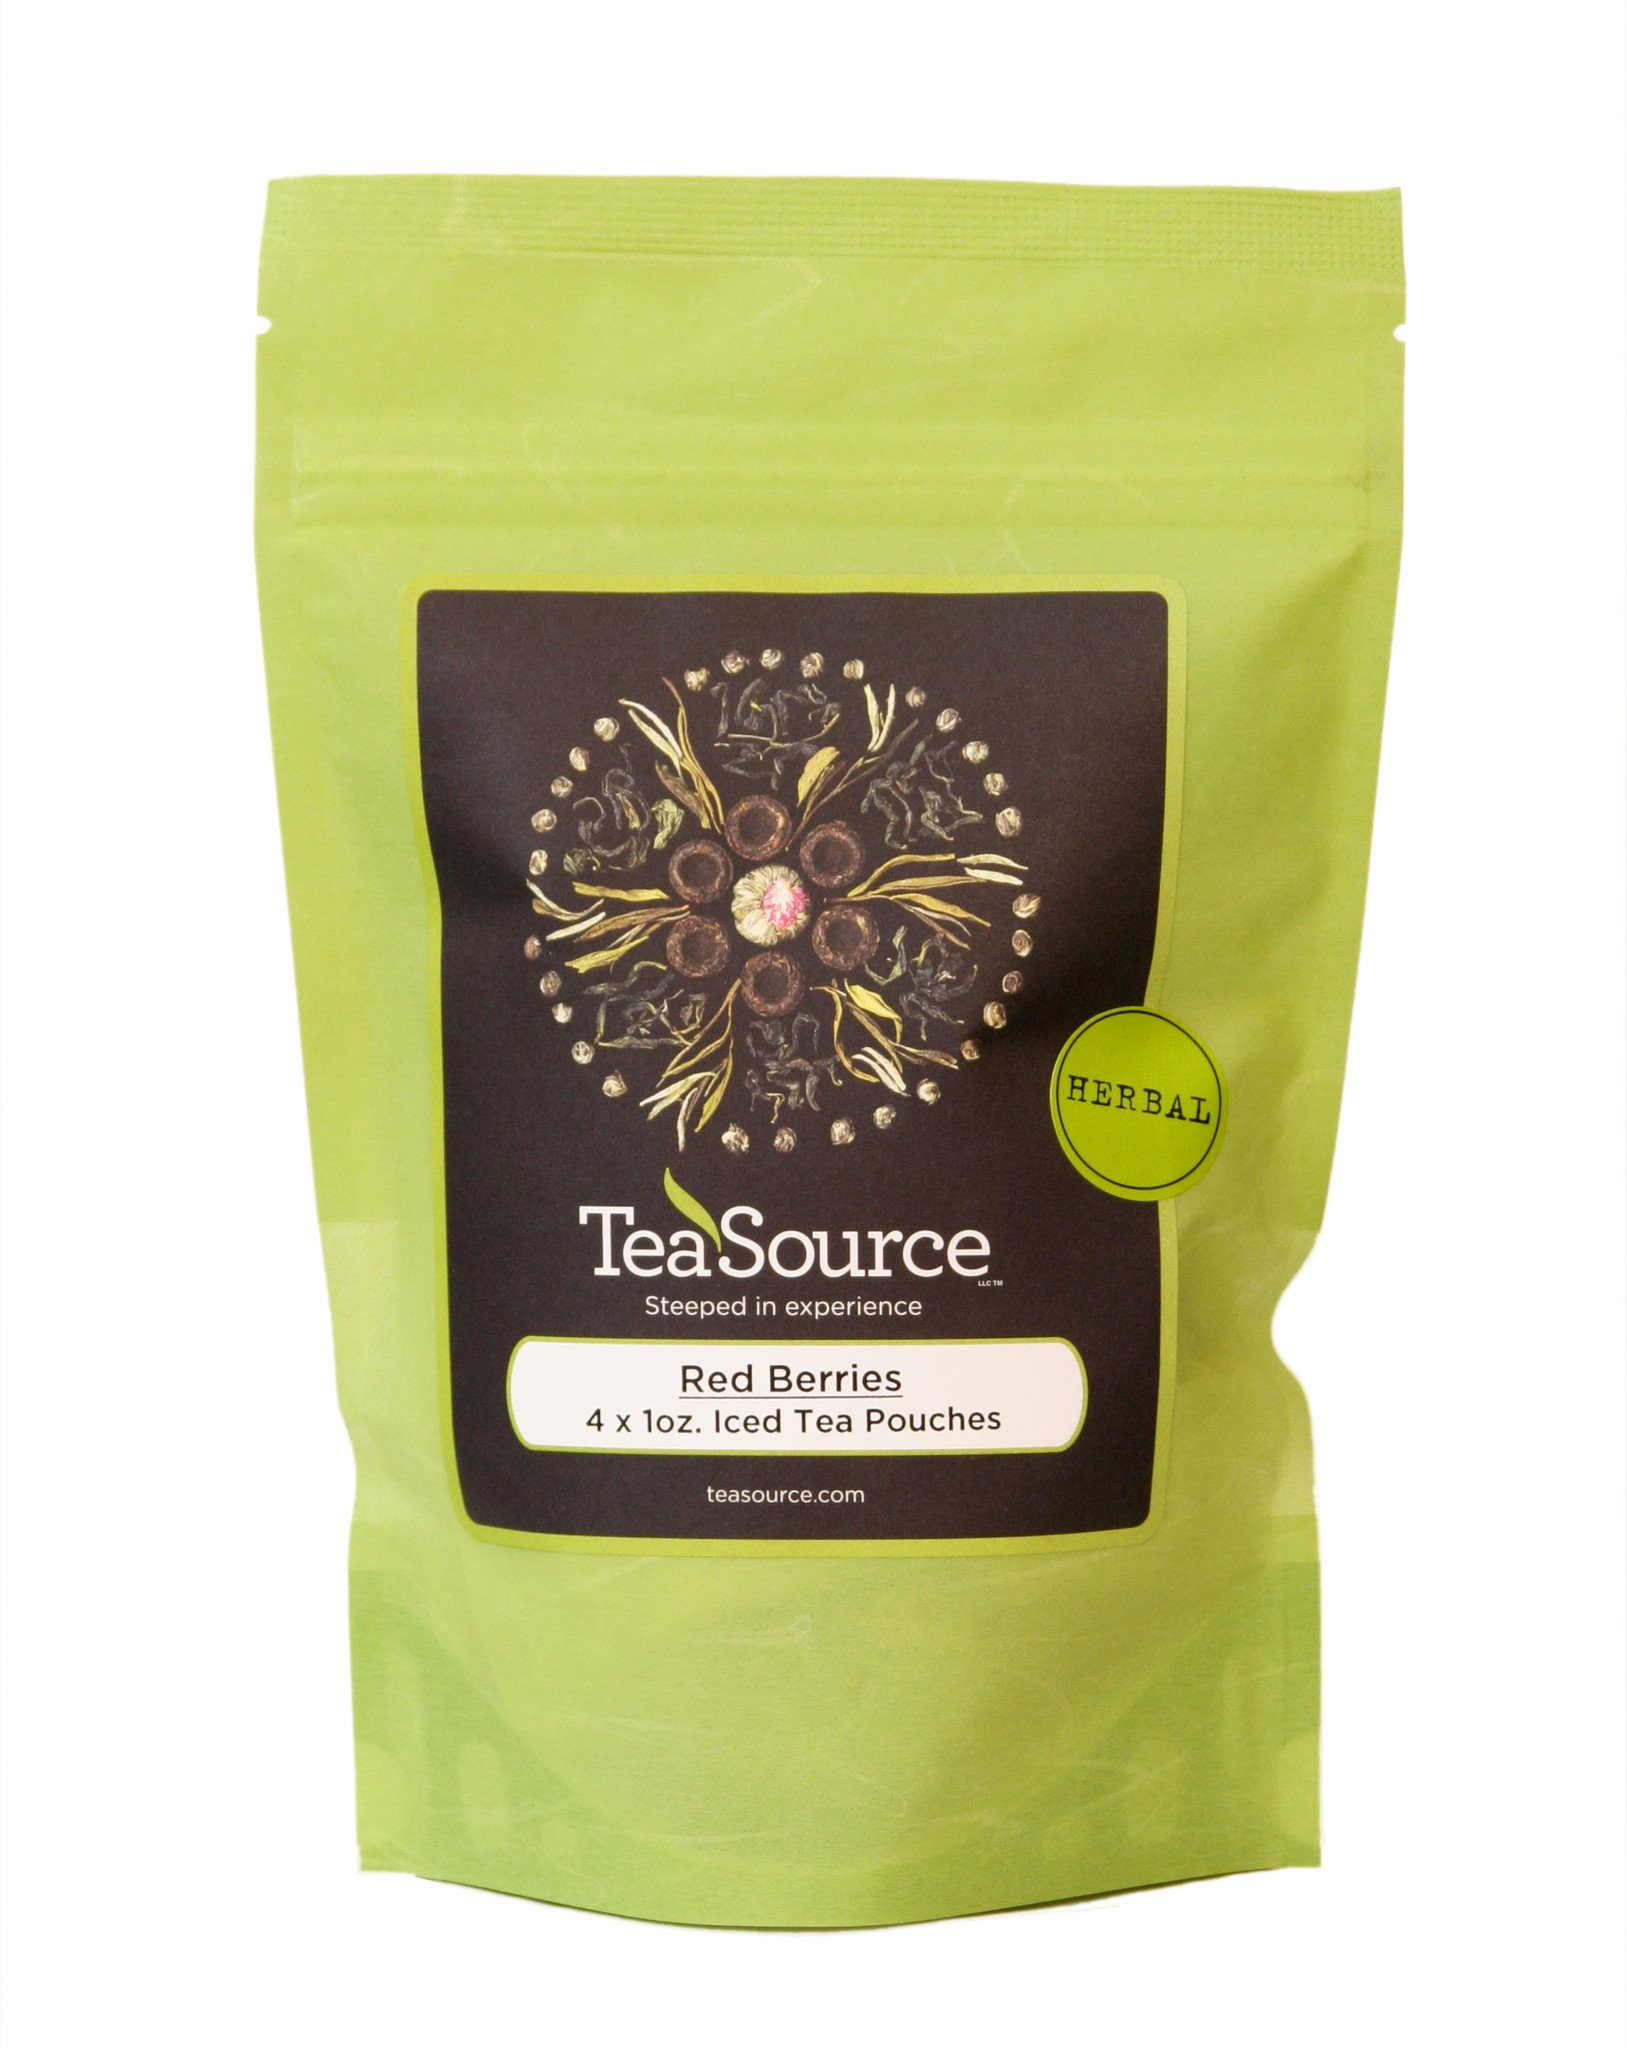 Red Berries - Iced Tea Pouches | Herbal Tea | TeaSource